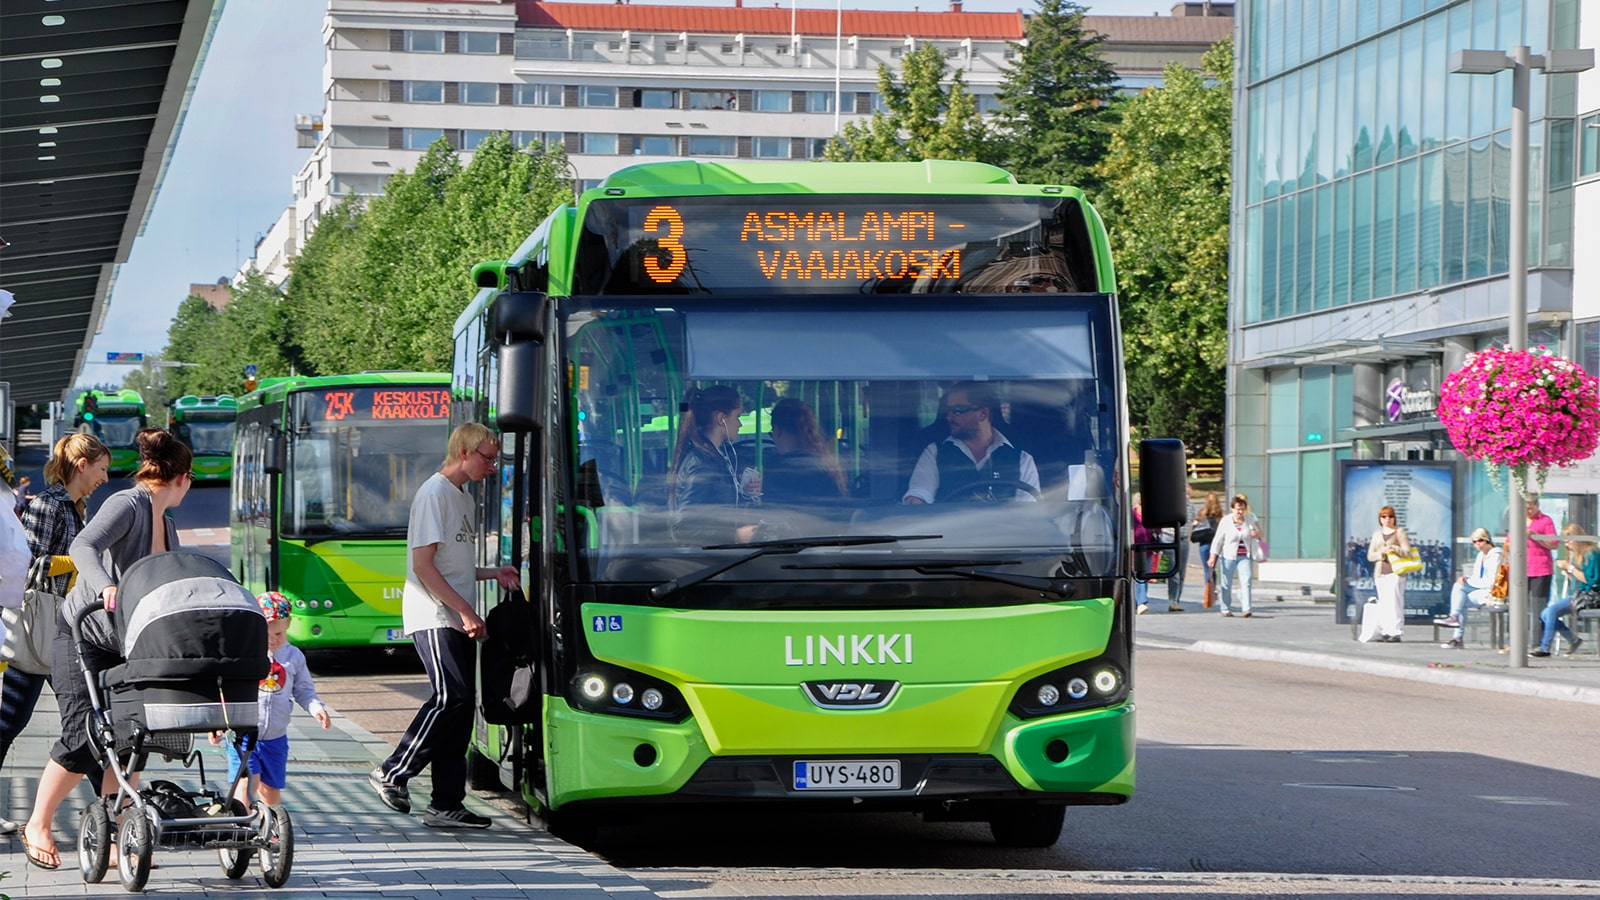 Person stepping into a bus at Jyväskylä